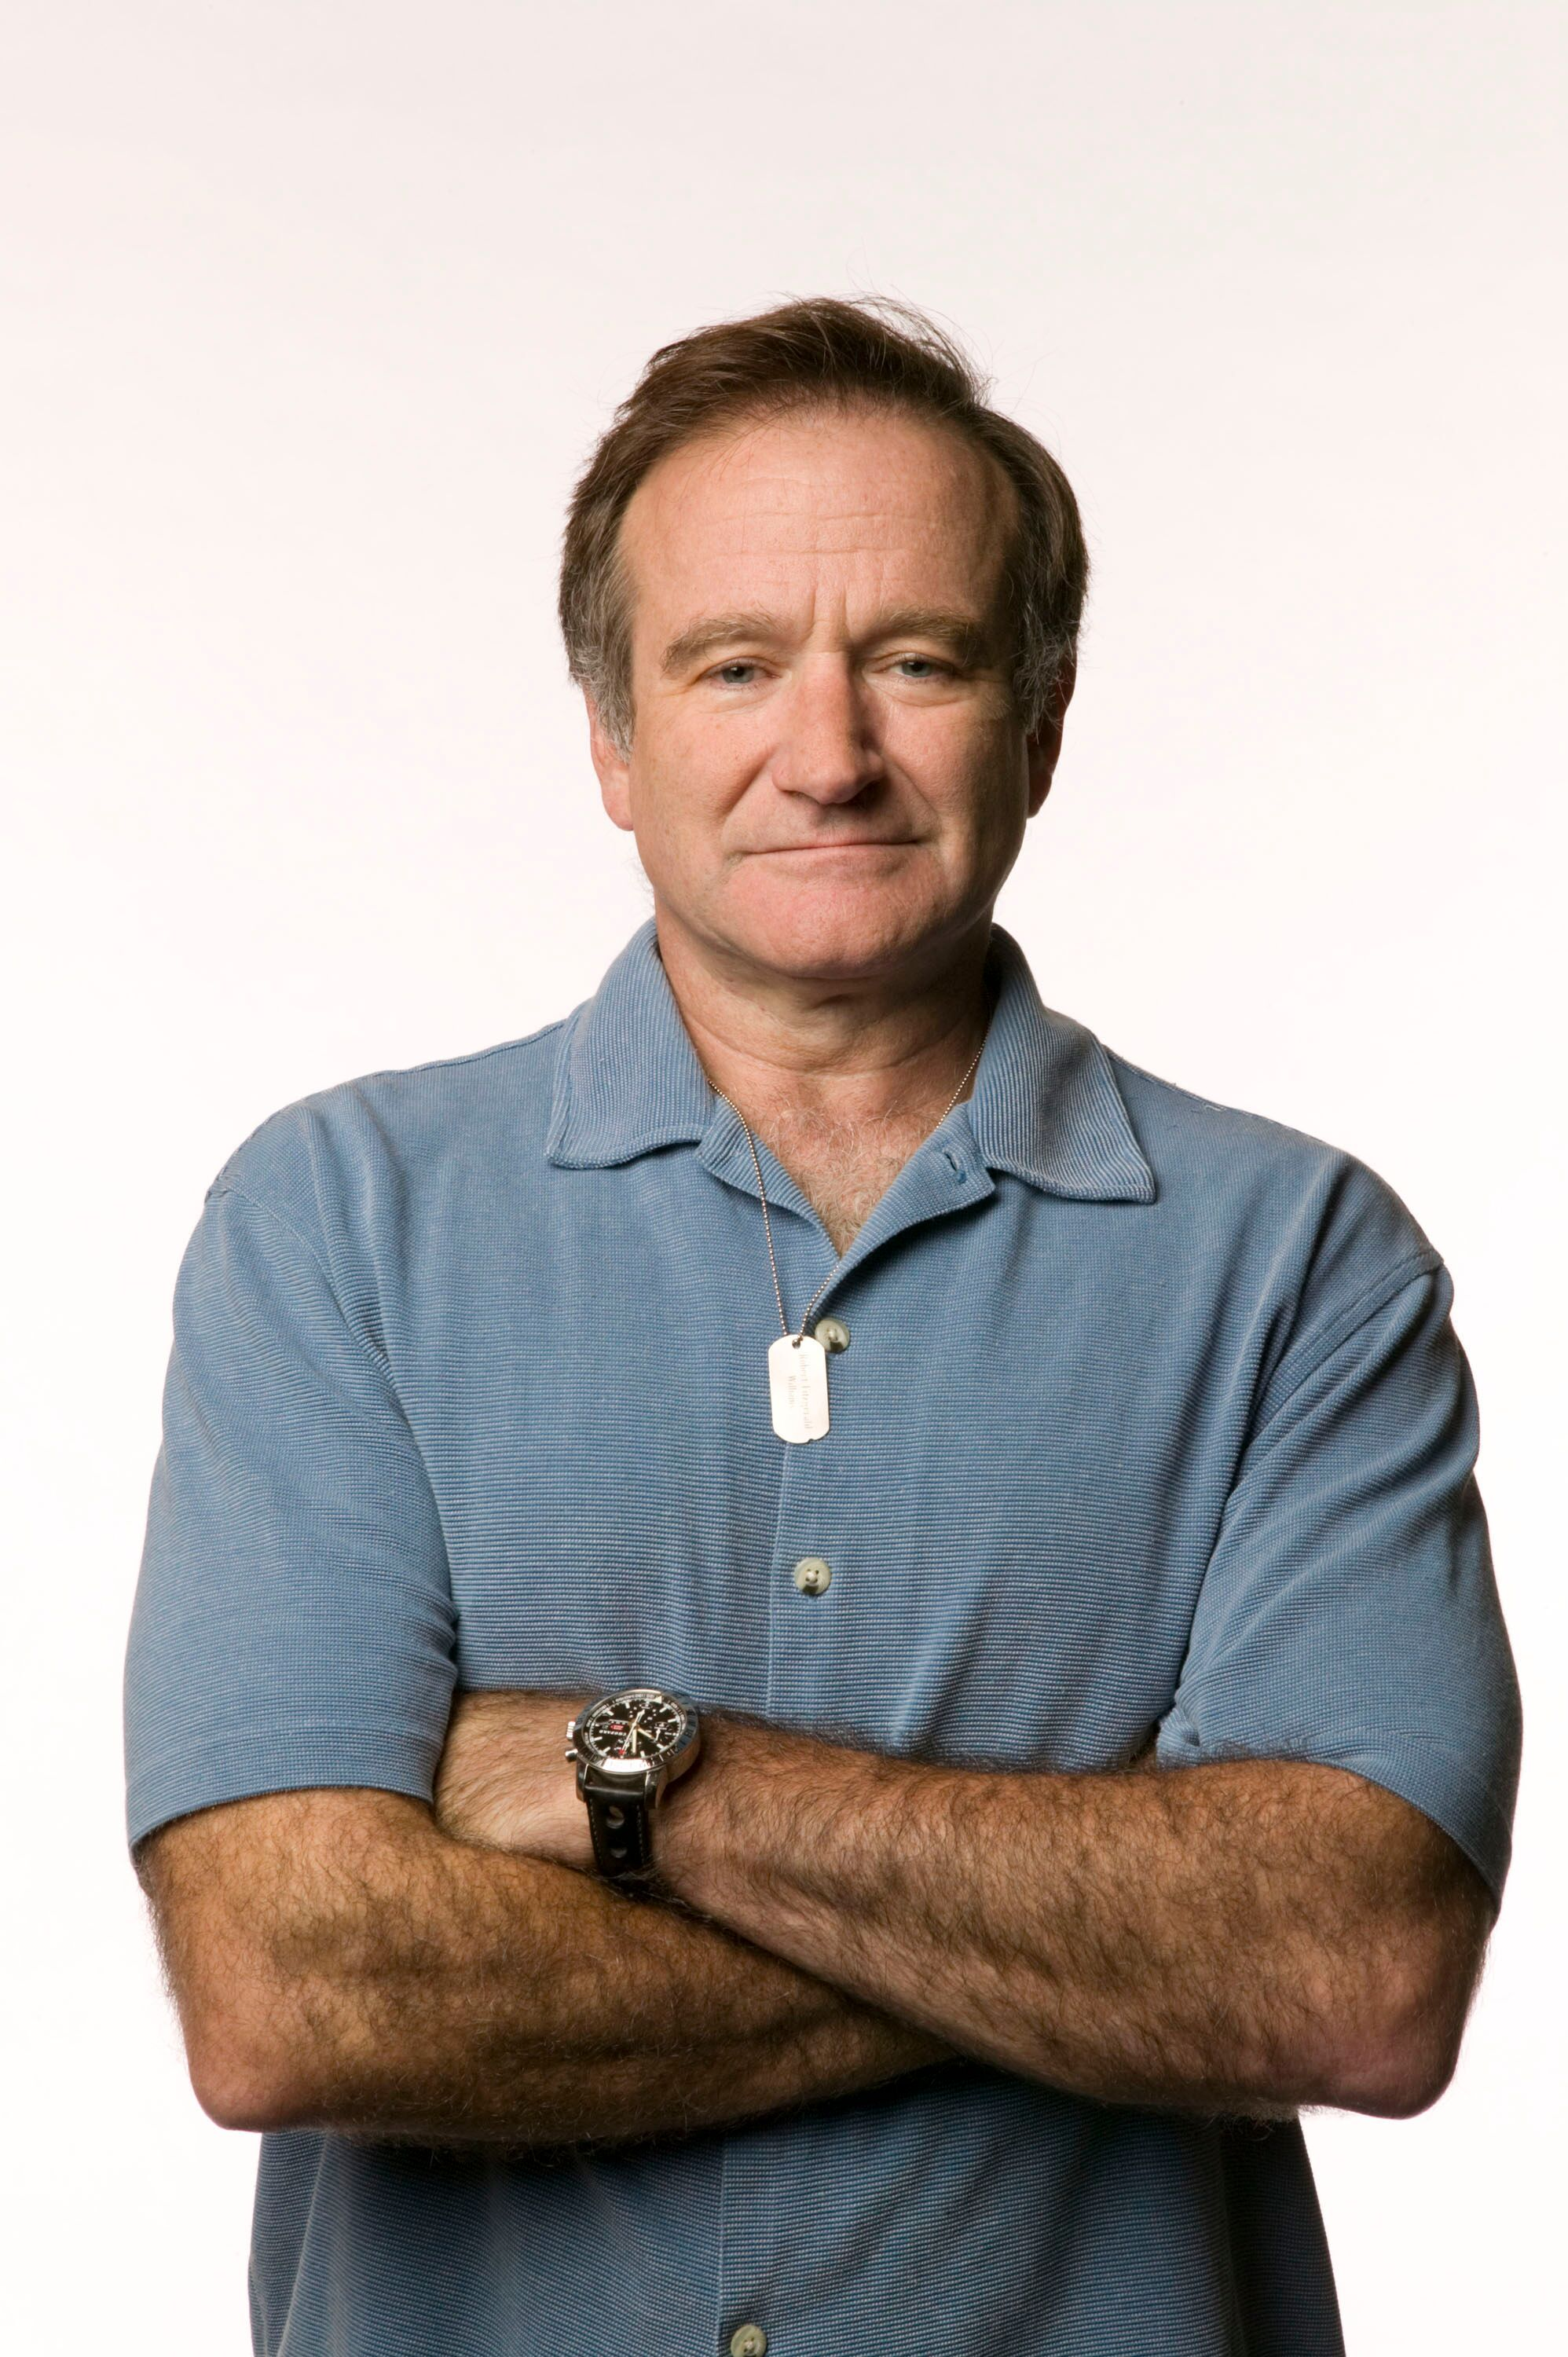 Robin Williams in a promotional portrait for the Search for the Cause campaign. | Source: Getty Images